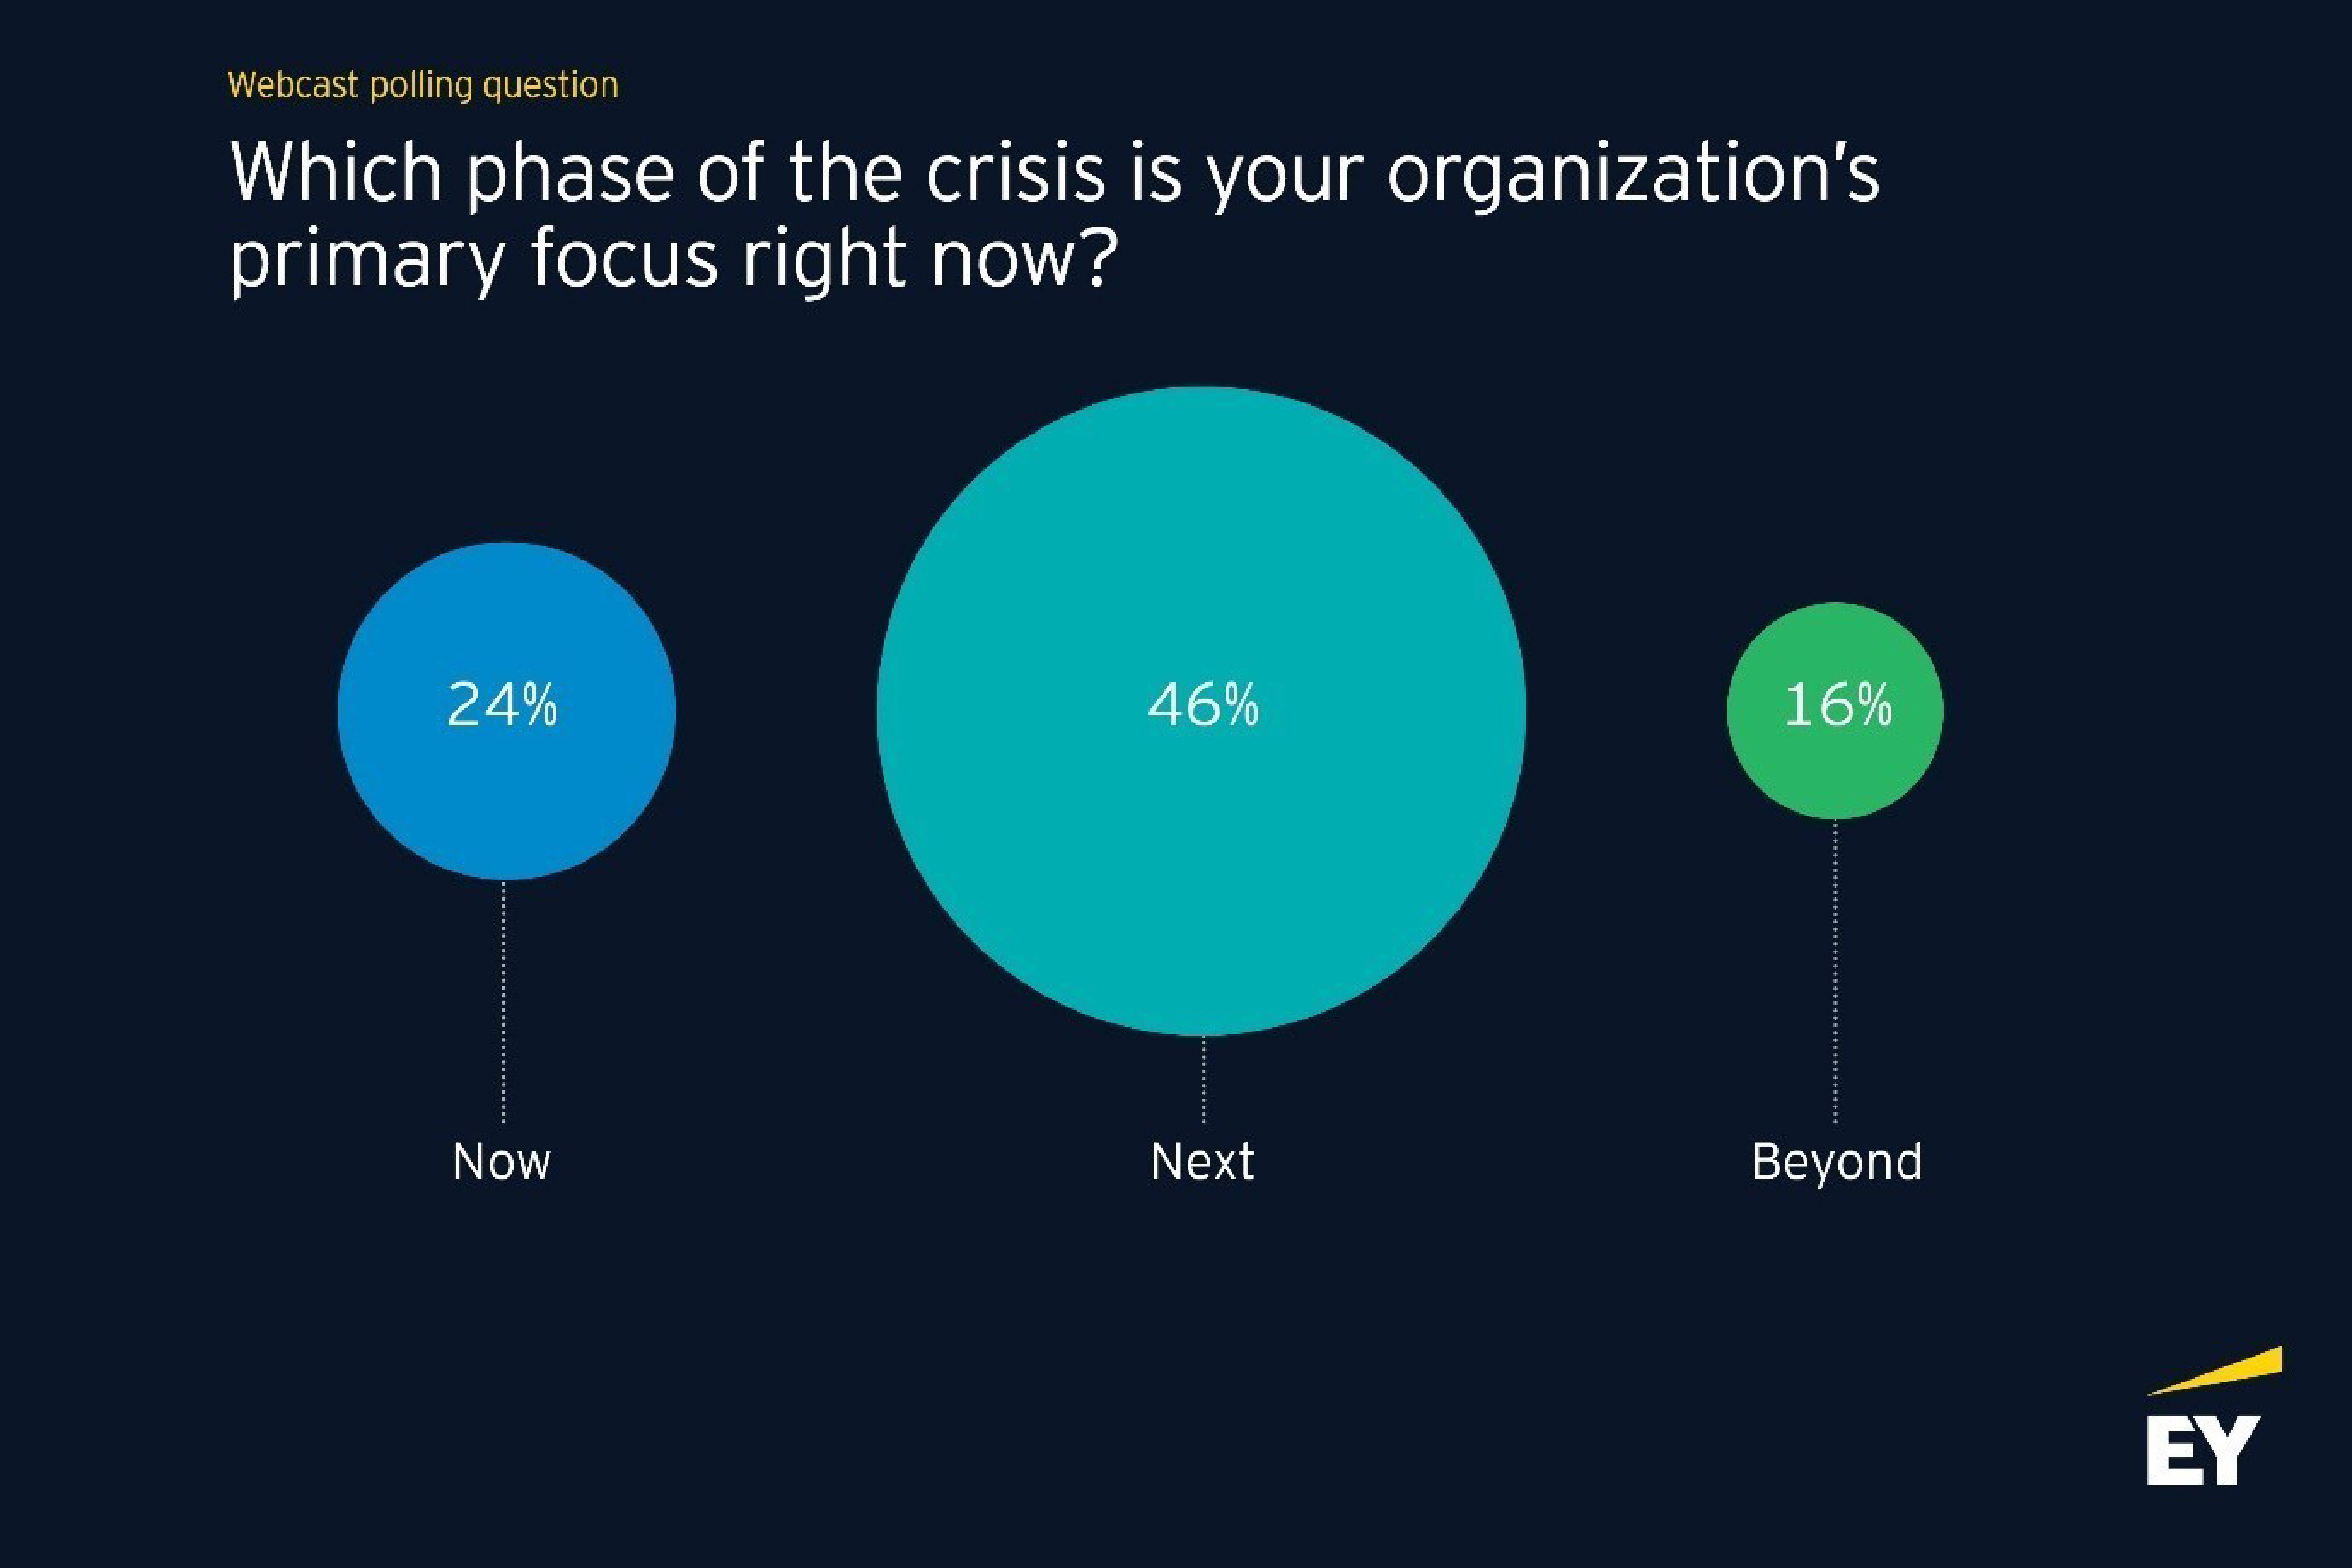 Organizations focus on crisis phases